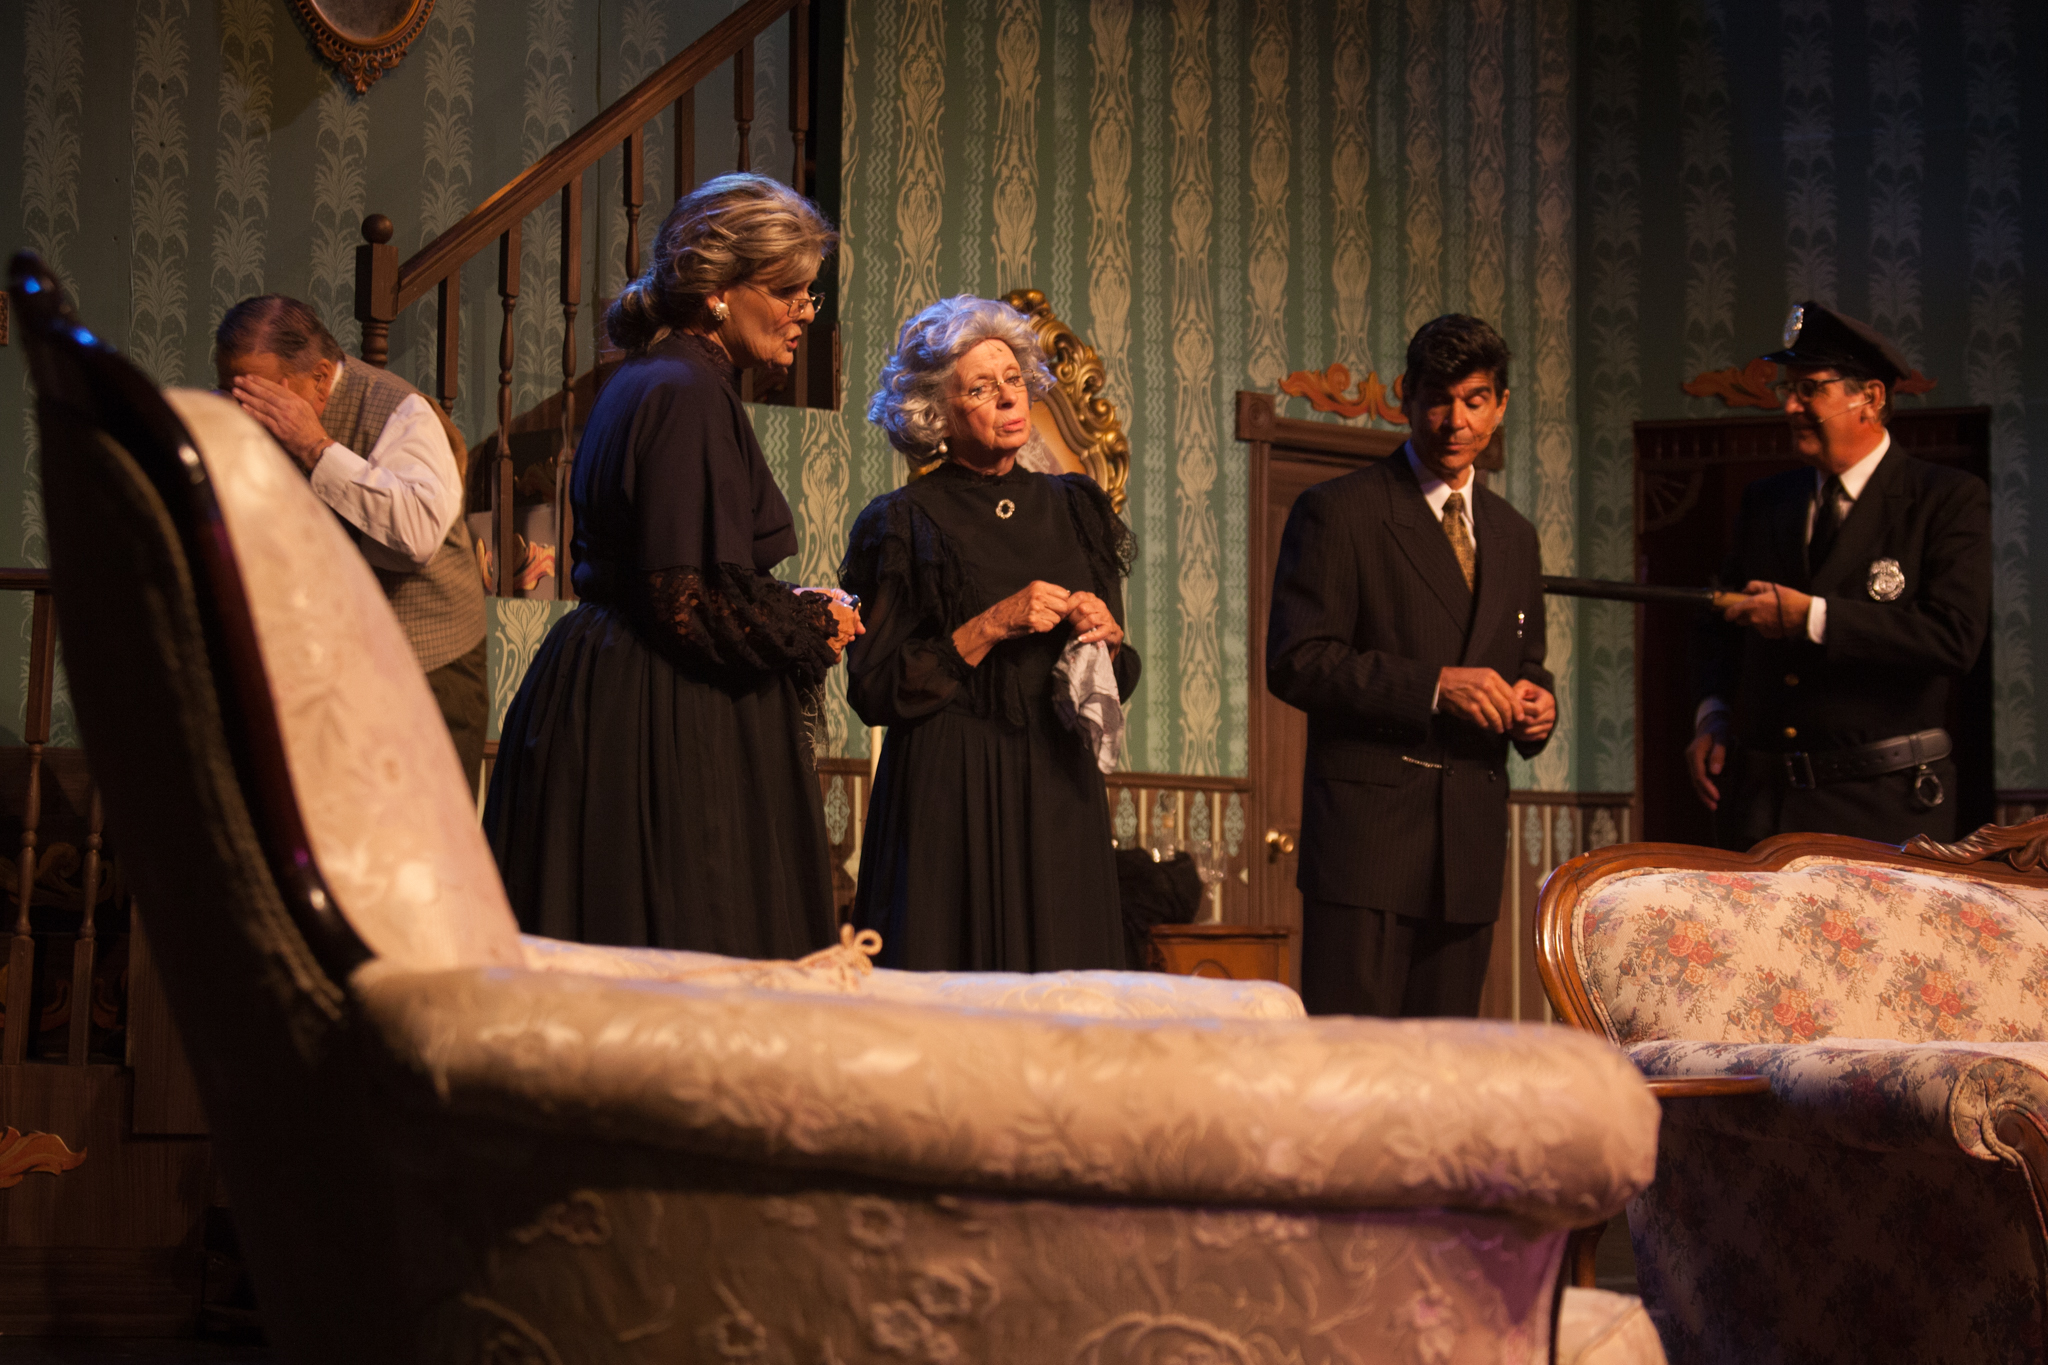 BWW Review: ARSENIC AND OLD LACE at The Players Centre For The Performing Arts